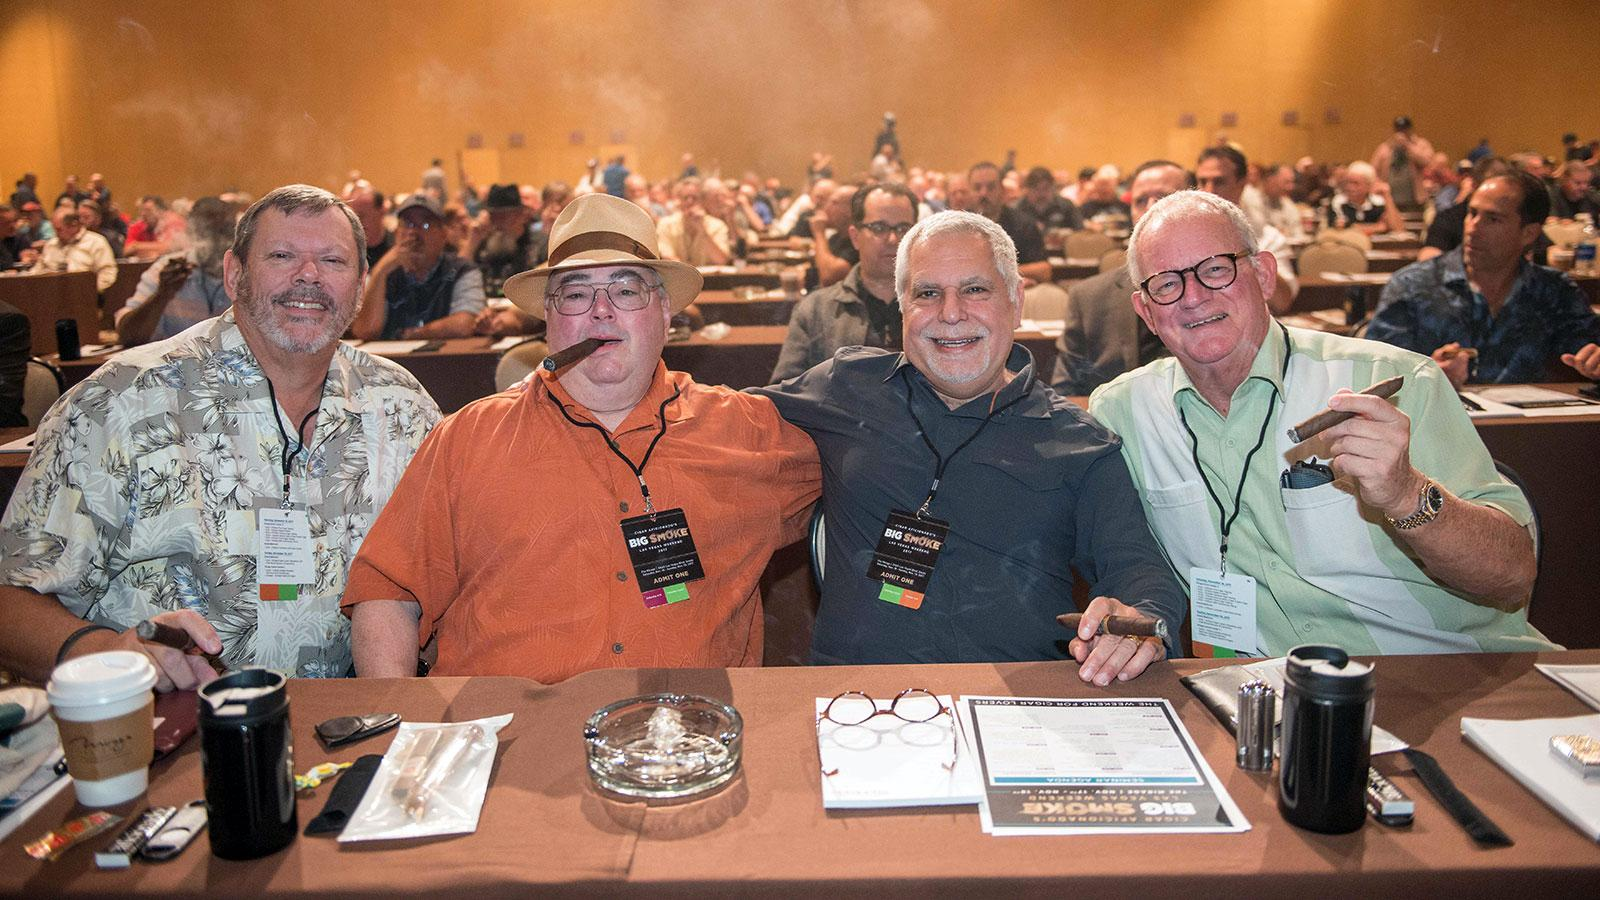 Kevin Breeland, Bob Francett, Jim Tenuto and Larry Sorenson puffing on the award-winning smokes during the Saturday seminars.